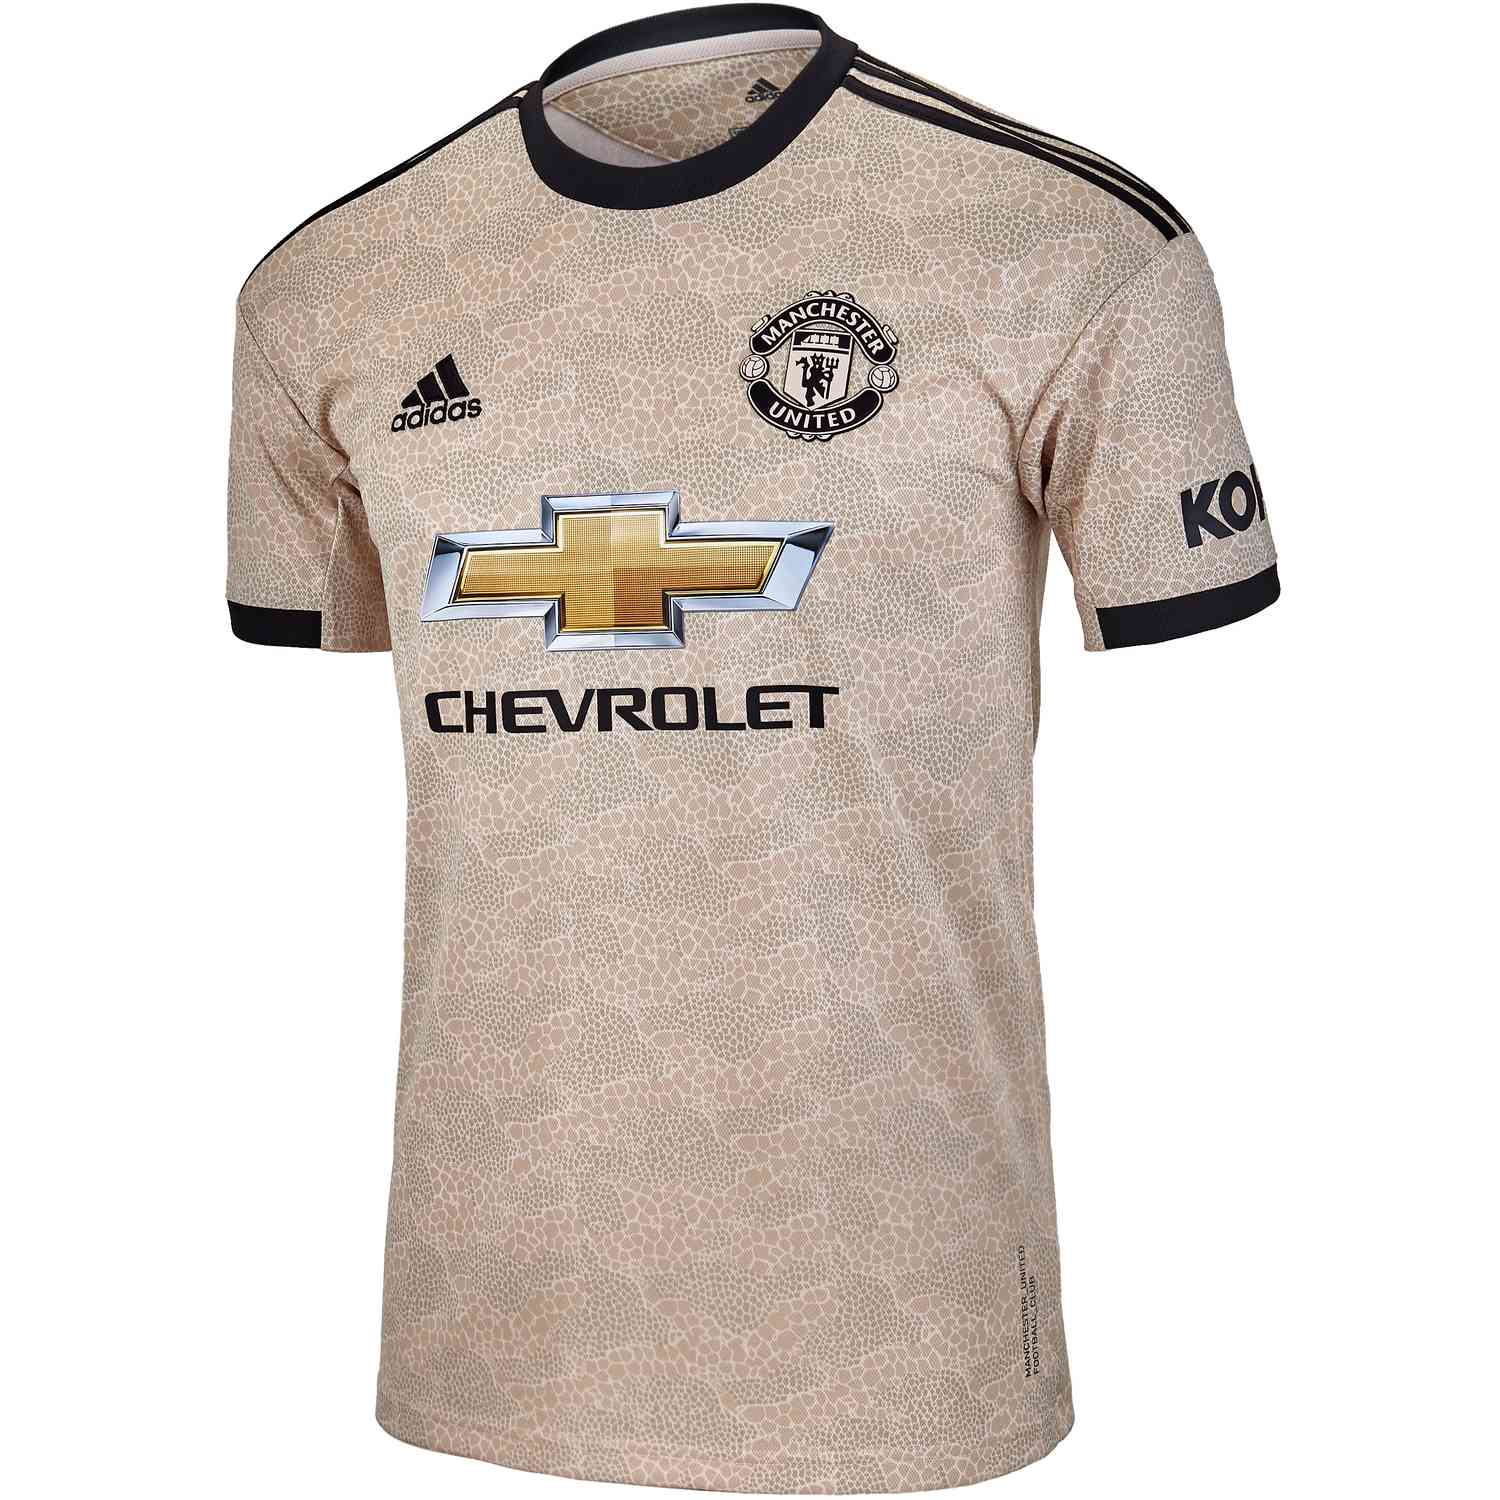 2019/20 Kids adidas Manchester United Away Jersey - Soccer Master